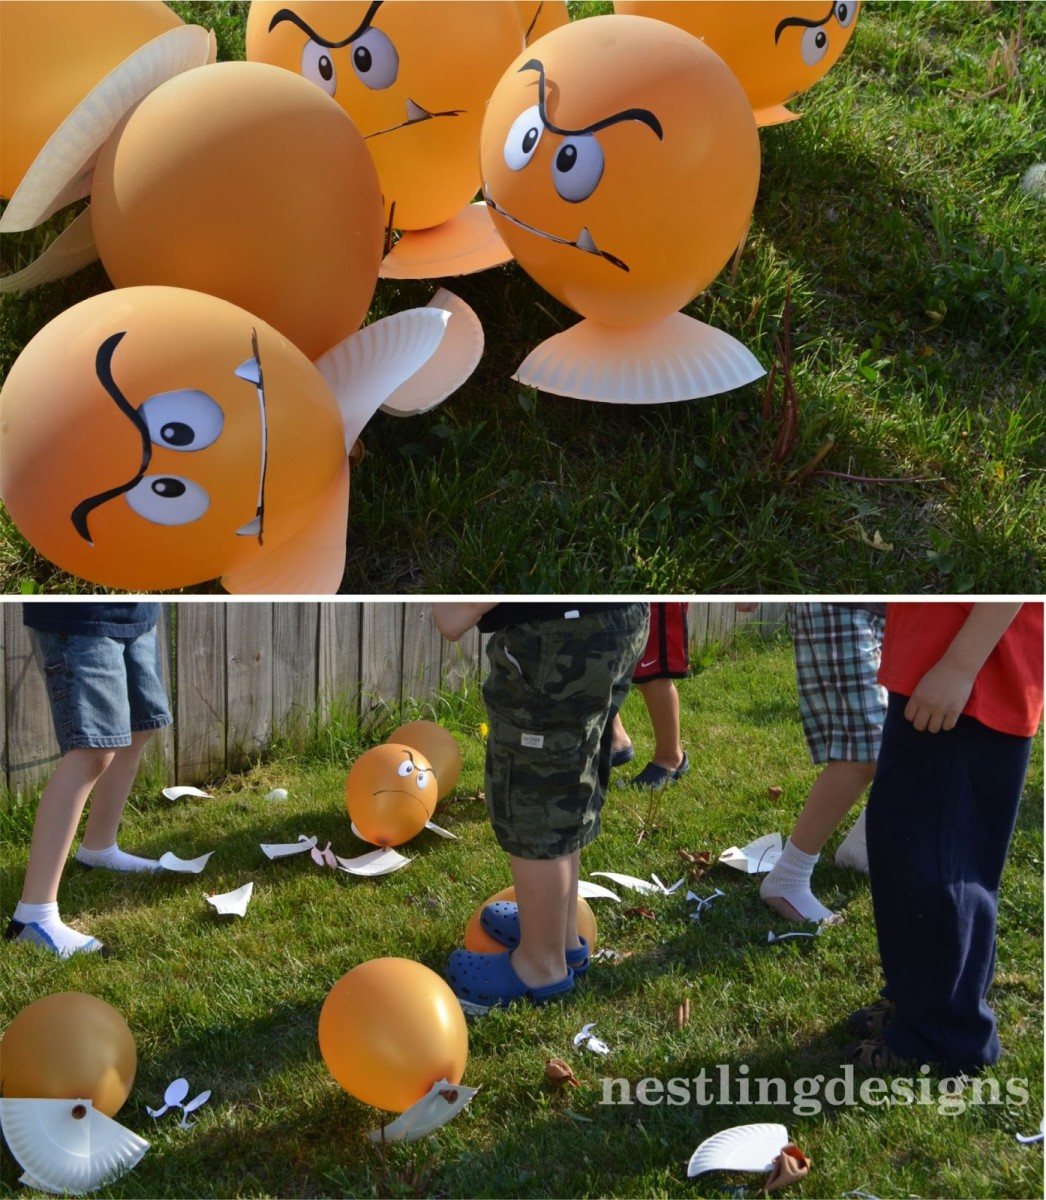 A cute party game with Goomba balloons!